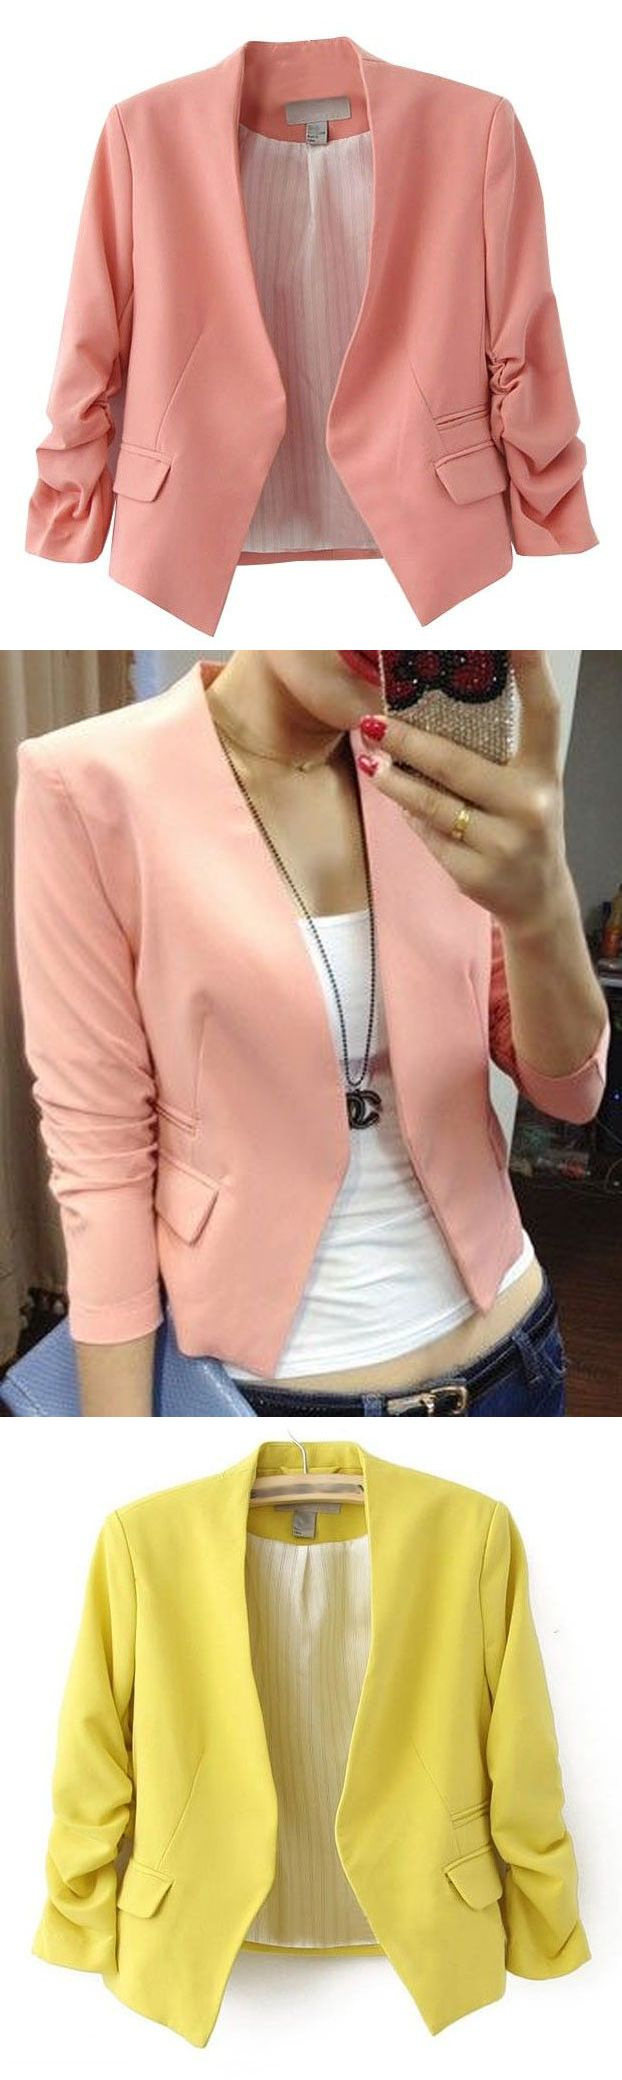 Cute Blazer in Coral / Peach / Apricot and Yellow